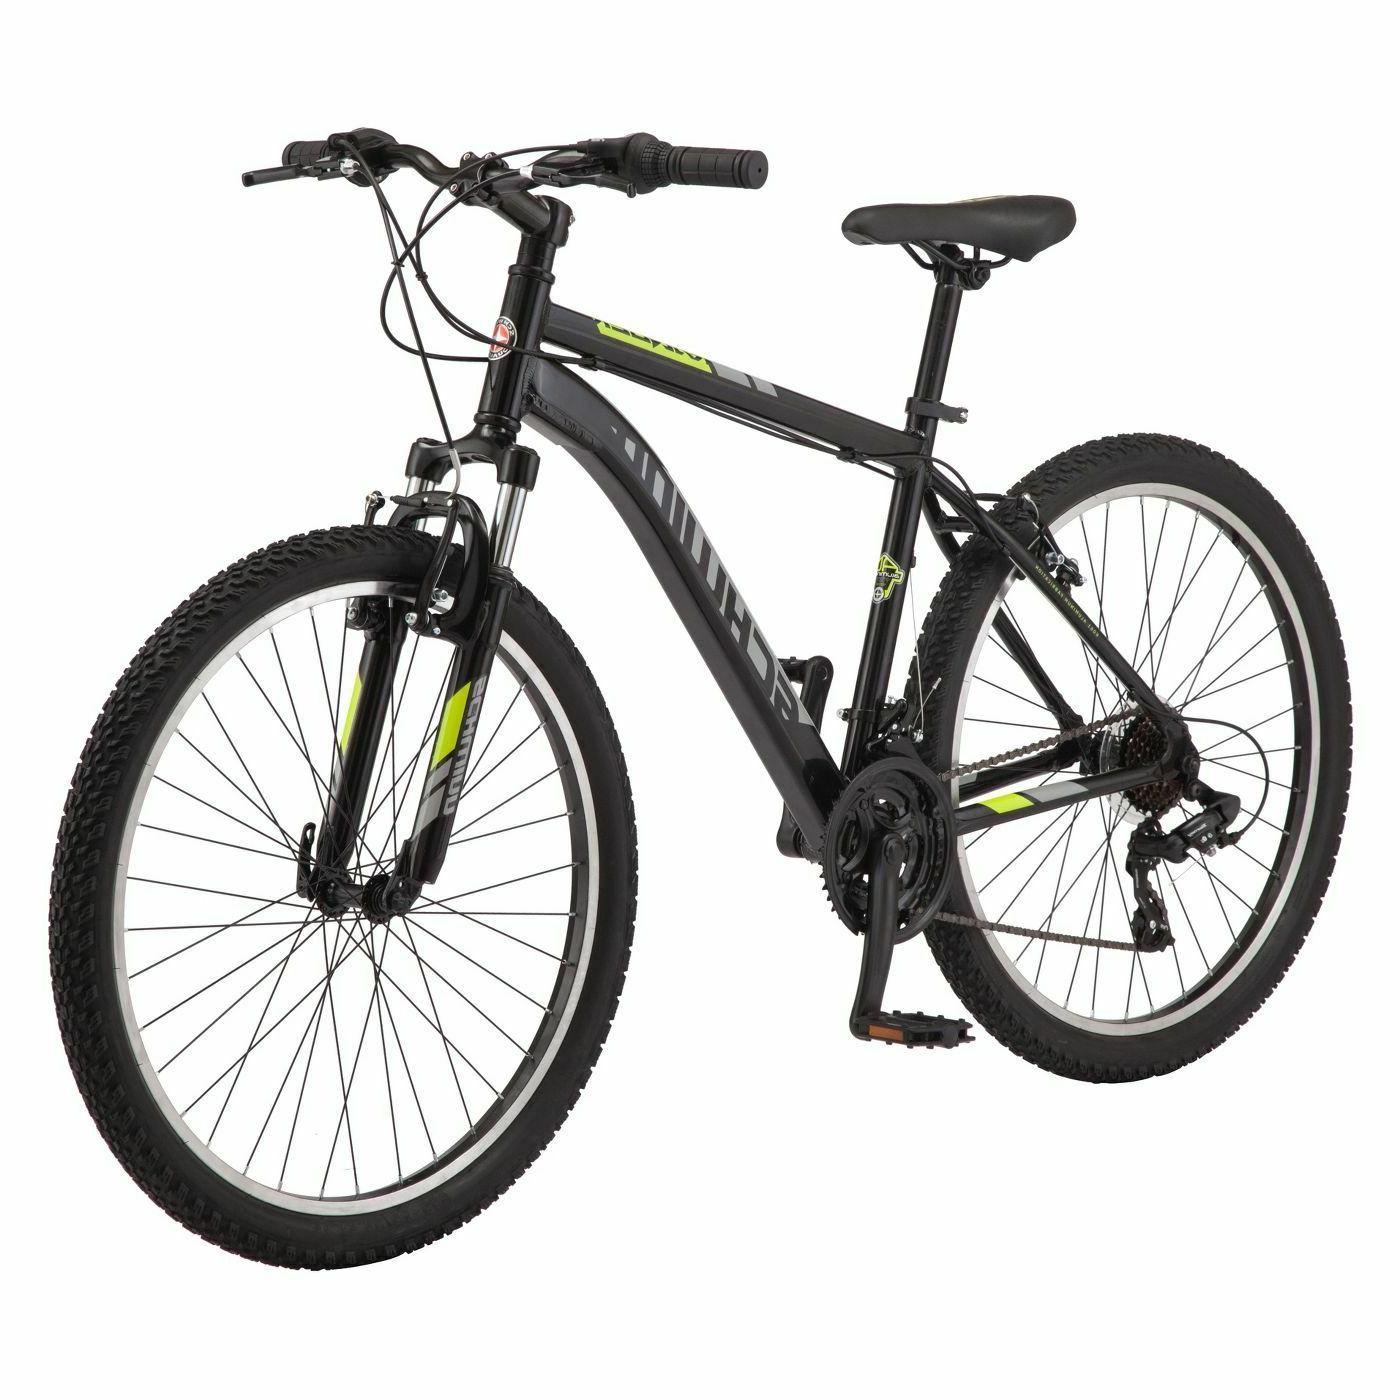 "Men's Schwinn 26"" Ranger Mountain Bike, Black, 21 Speed"